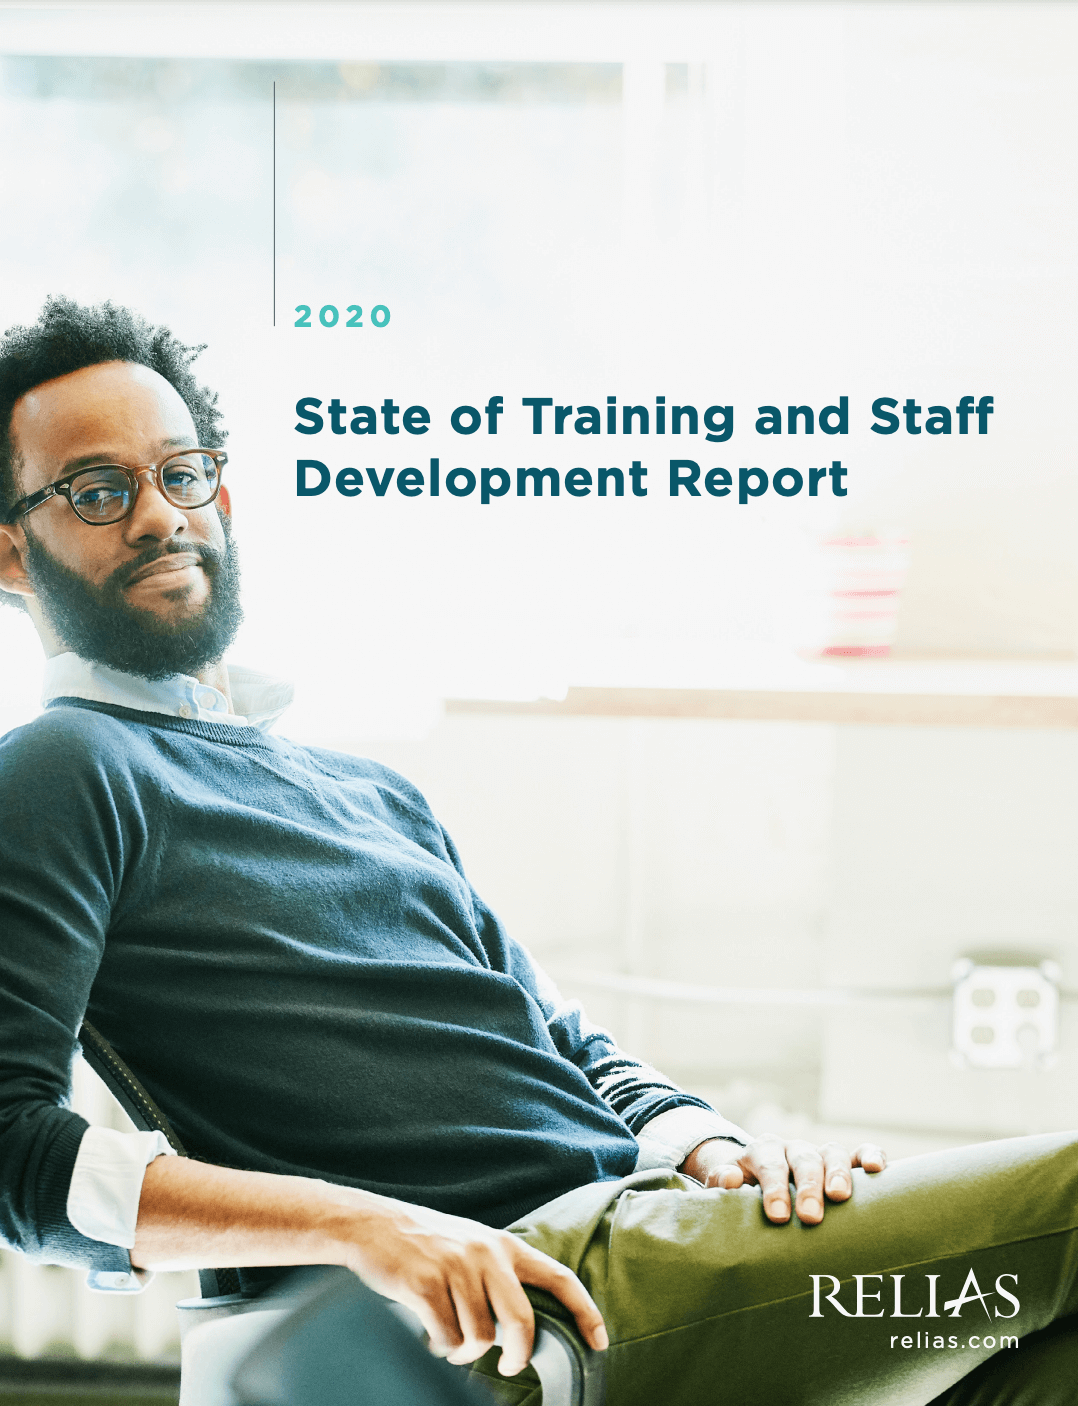 2020 State of Training and Staff Development Report